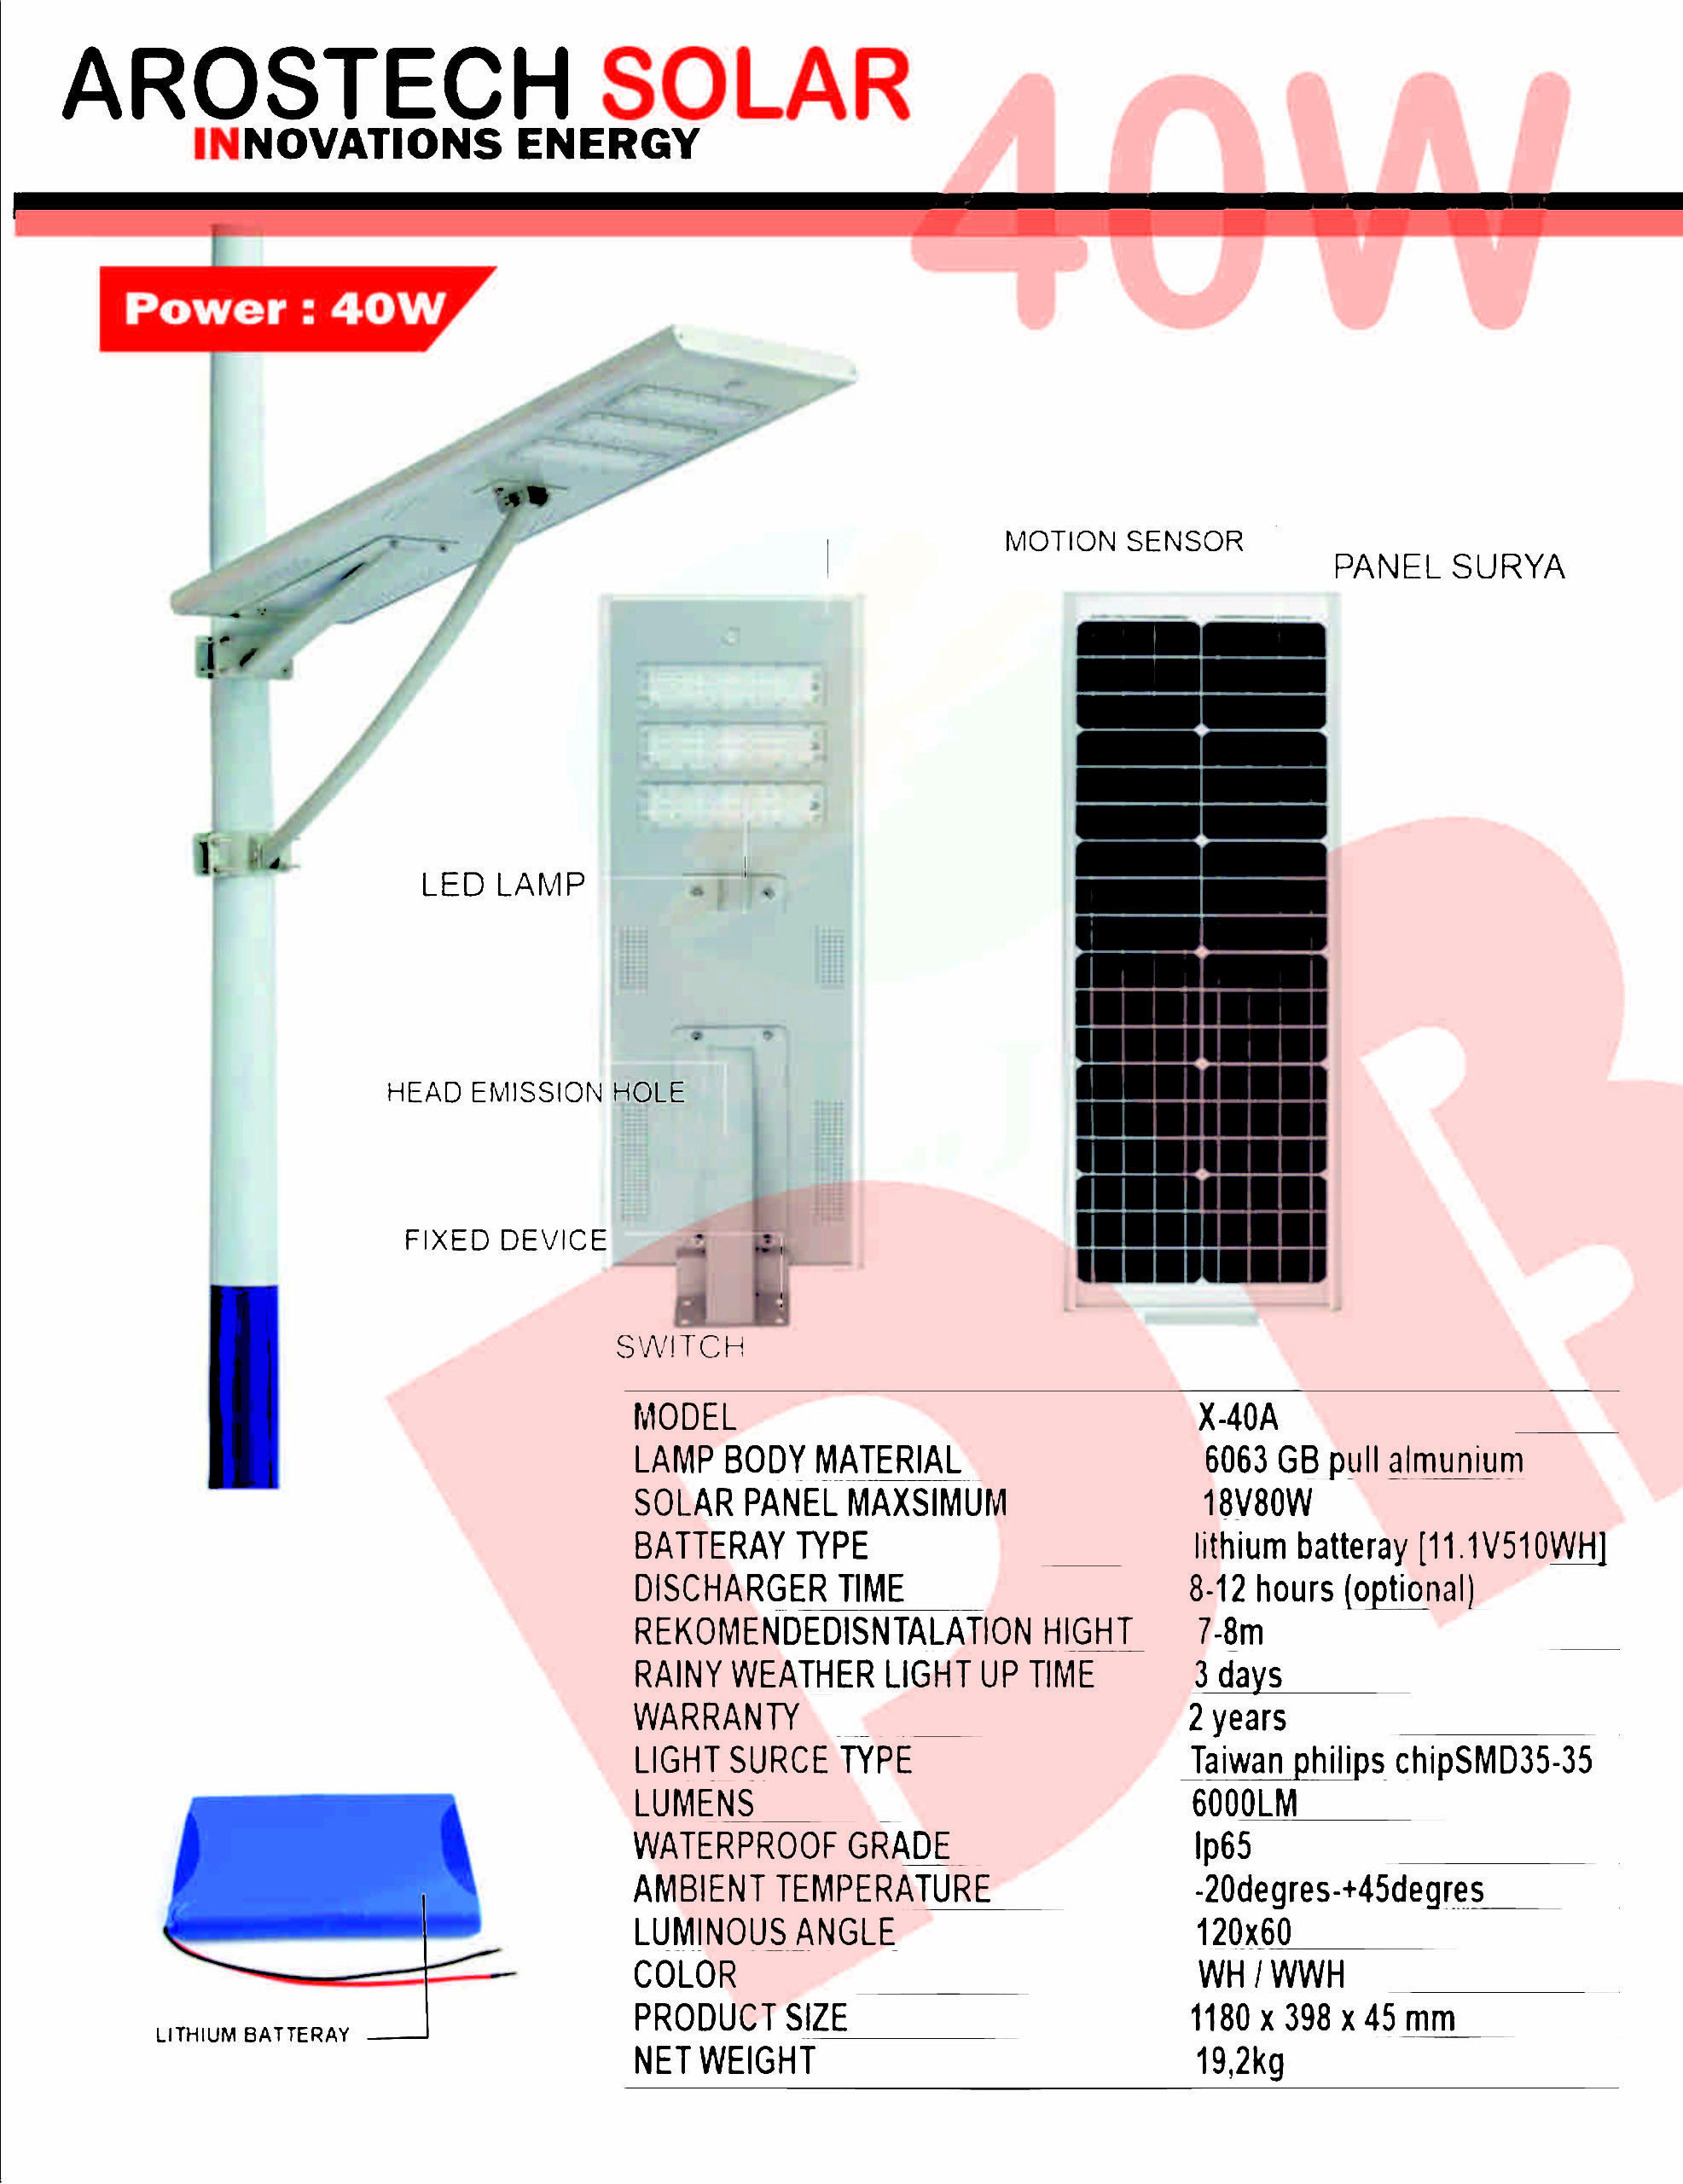 PJU SOLARCELL ALL-IN-ONE 40WATT | LAMPU ALL-IN-ONE 40WATT INTERGRATED